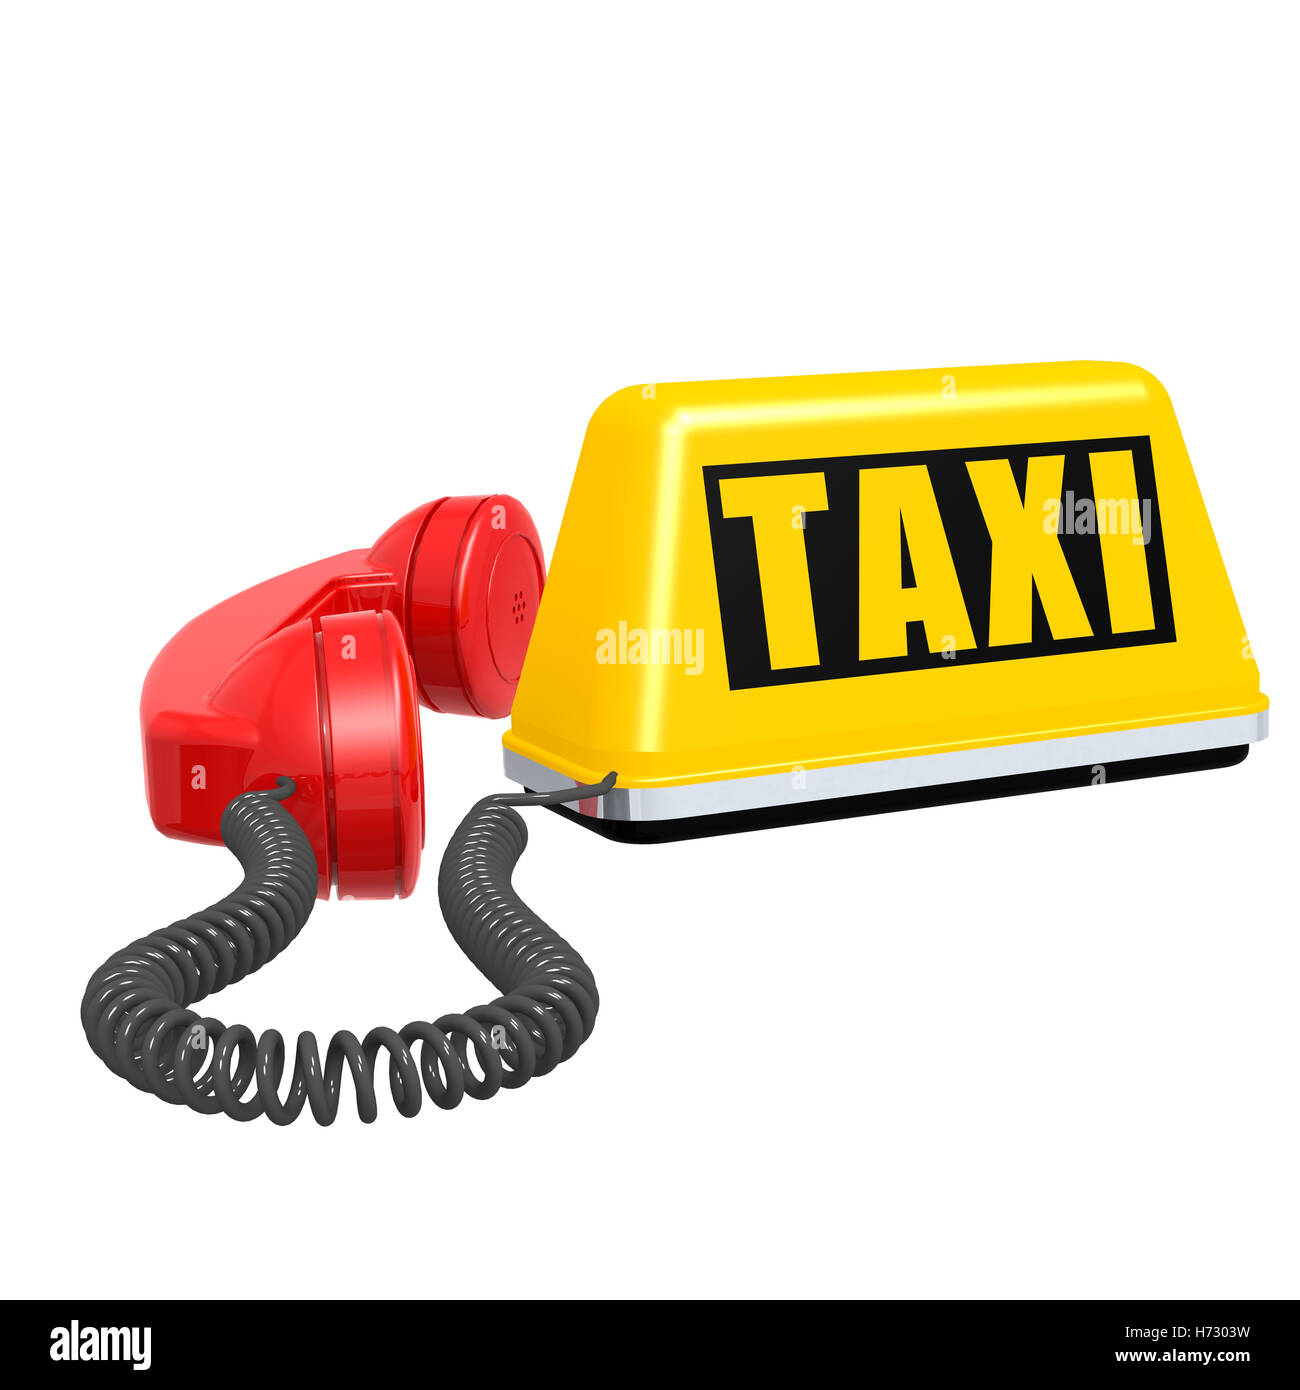 telephone phone order call travel isolated model design project concept plan draft ride public traffic transportation - Stock Image